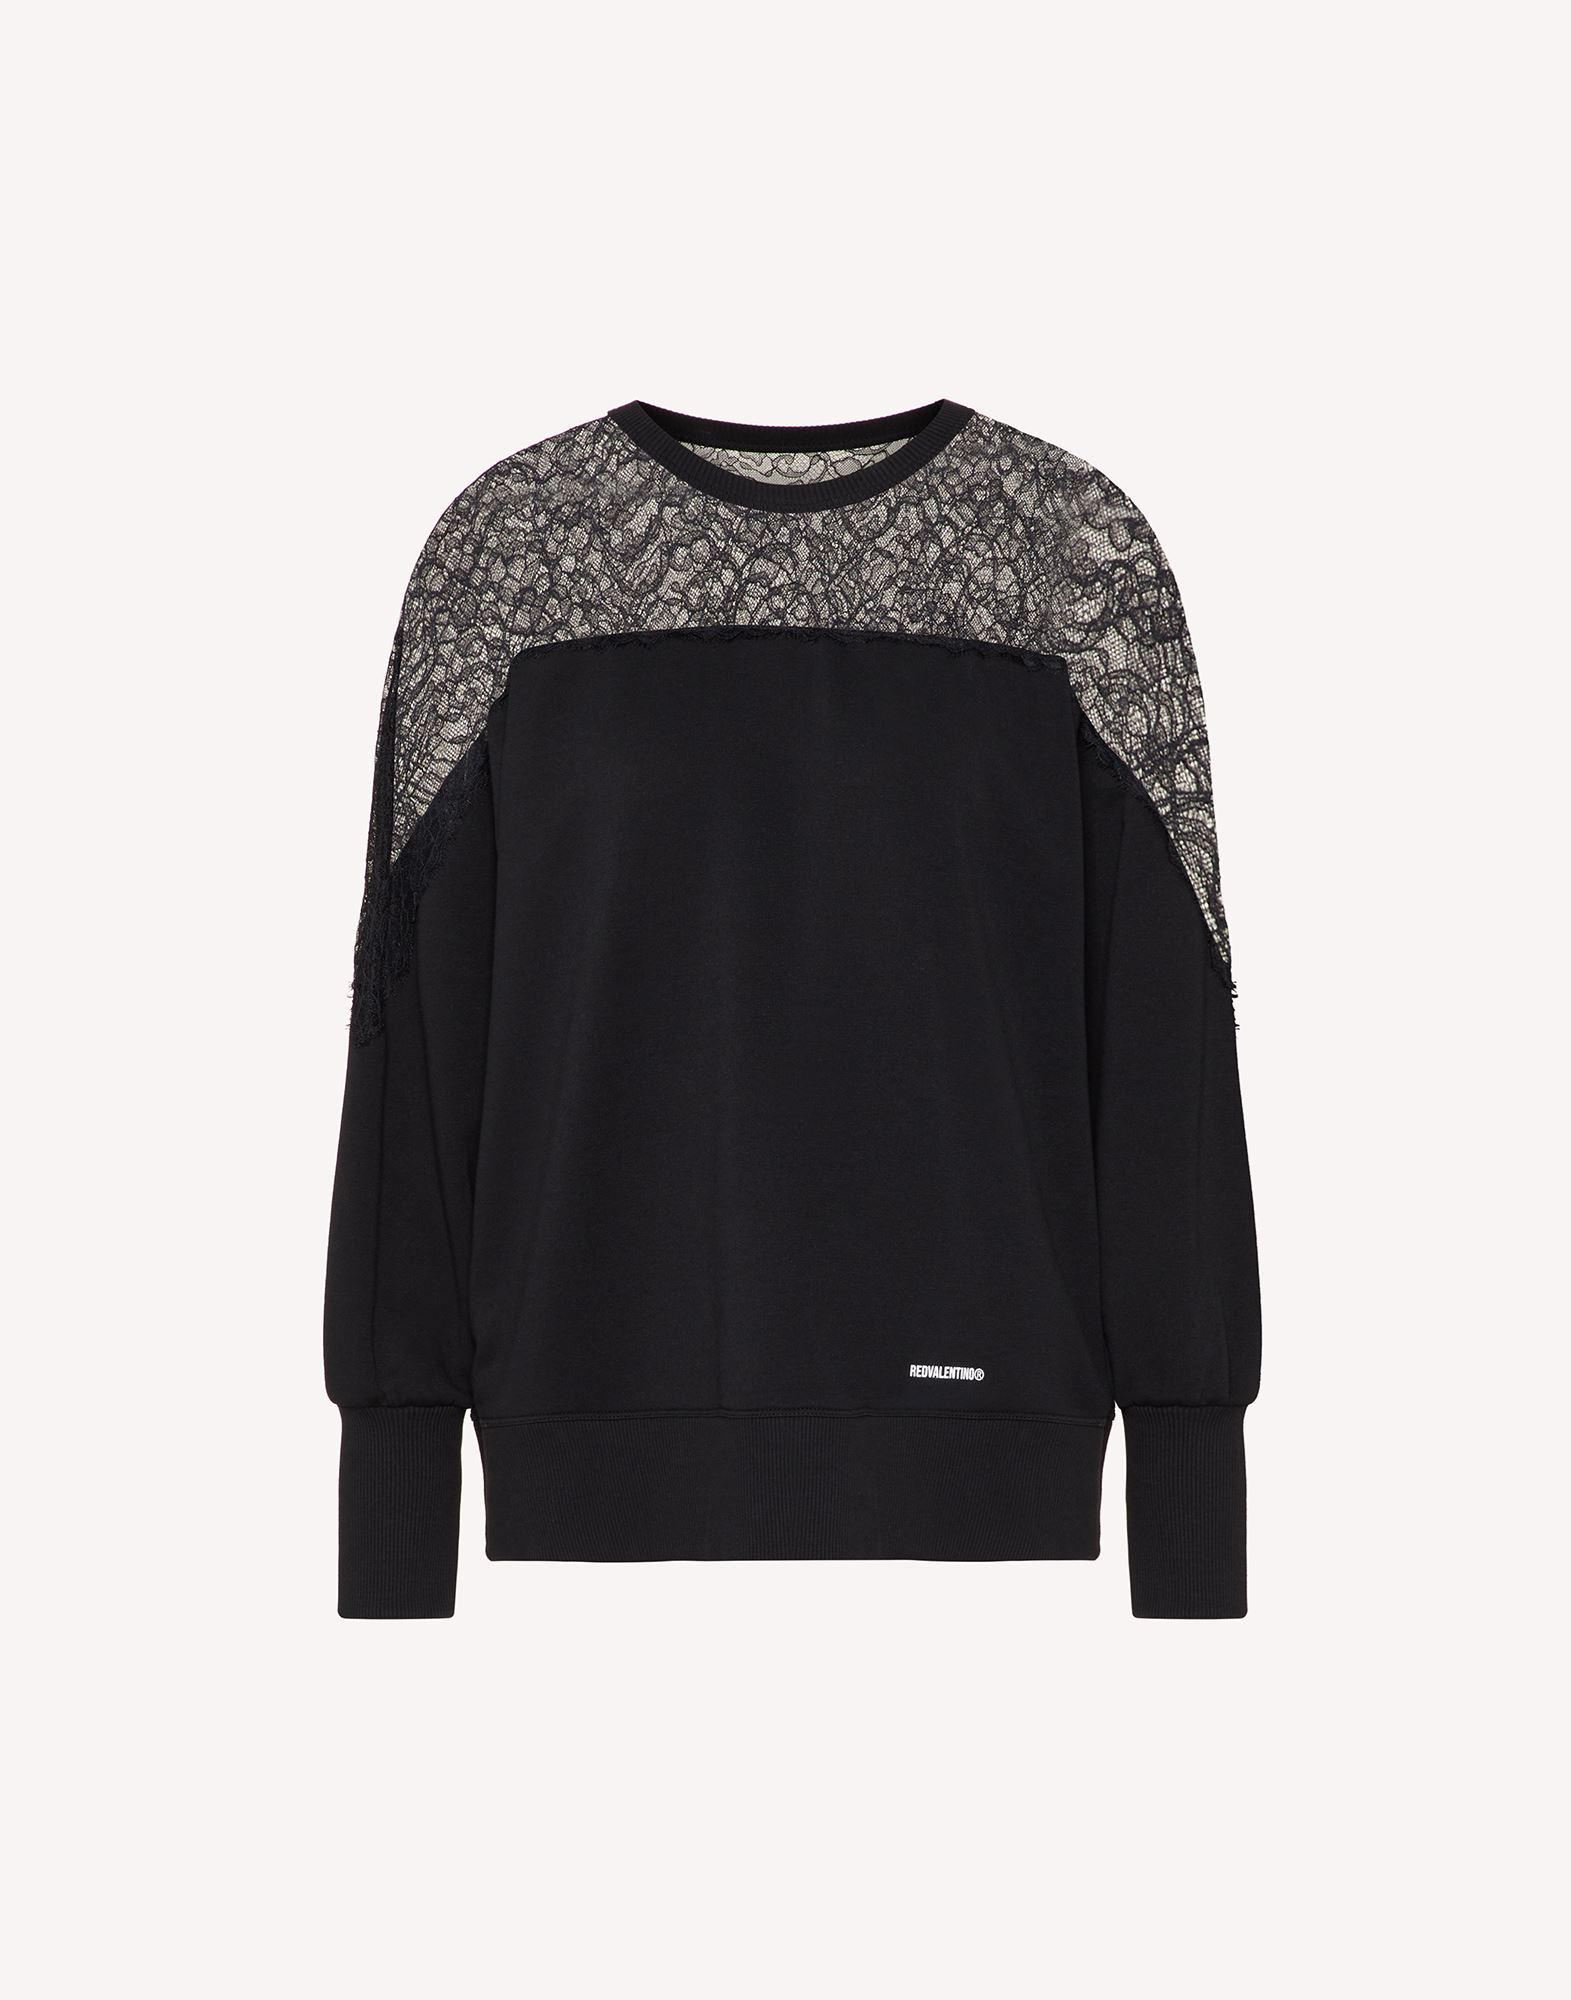 SWEATSHIRT WITH LACE 4